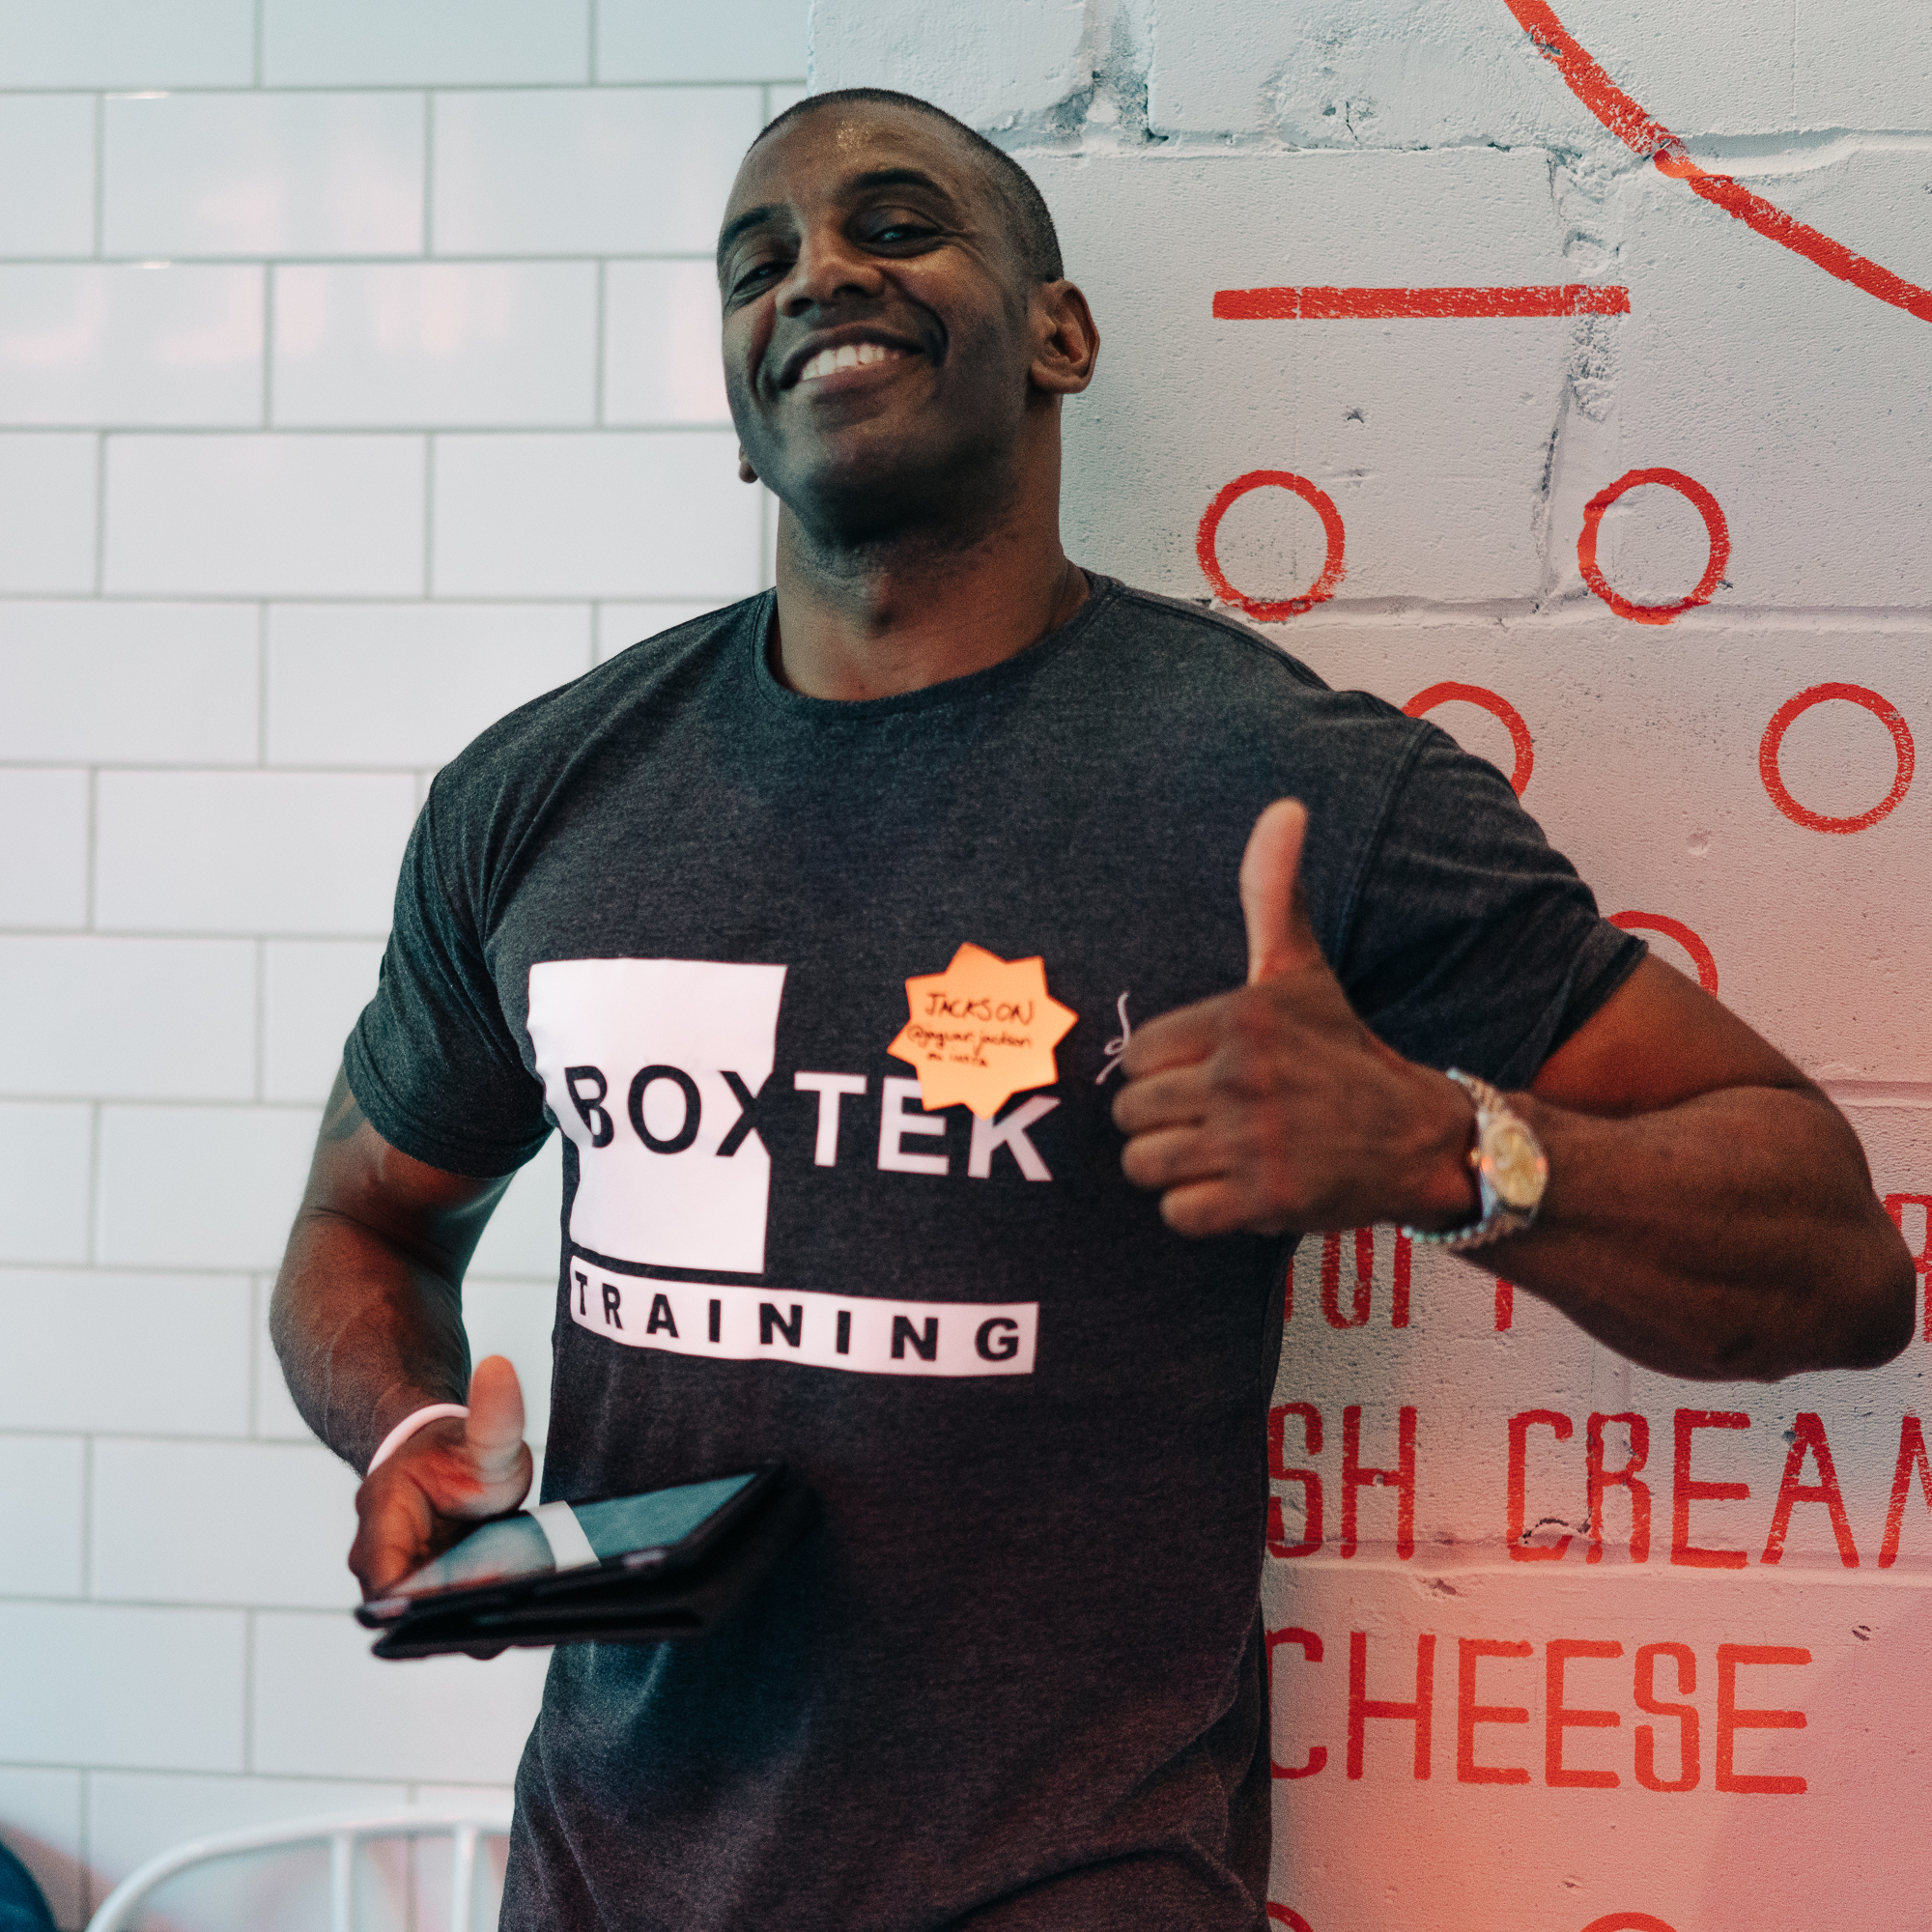 Local Boxtek business manager at POW Digital Camp meetup in Whitechapel